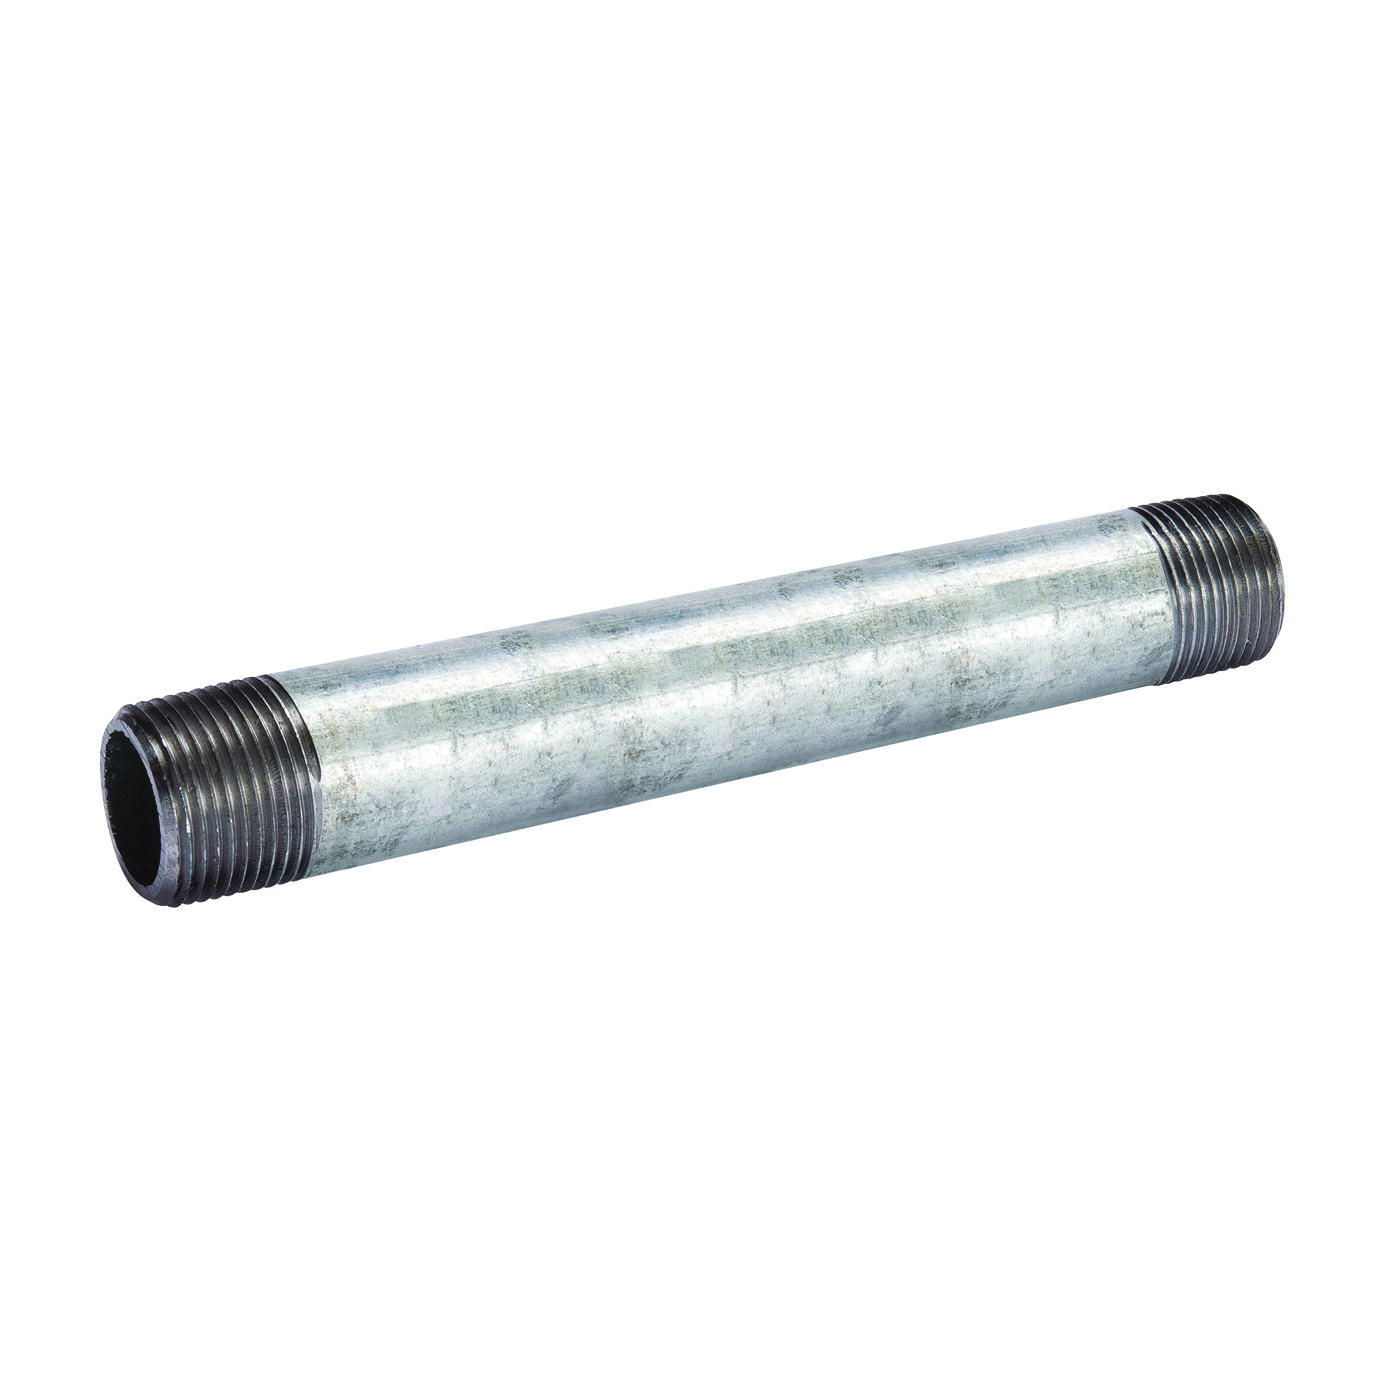 Picture of B & K 571-080BC Pipe Nipple, 4 in, Threaded, Galvanized Steel, SCH 40 Schedule, 8 in L